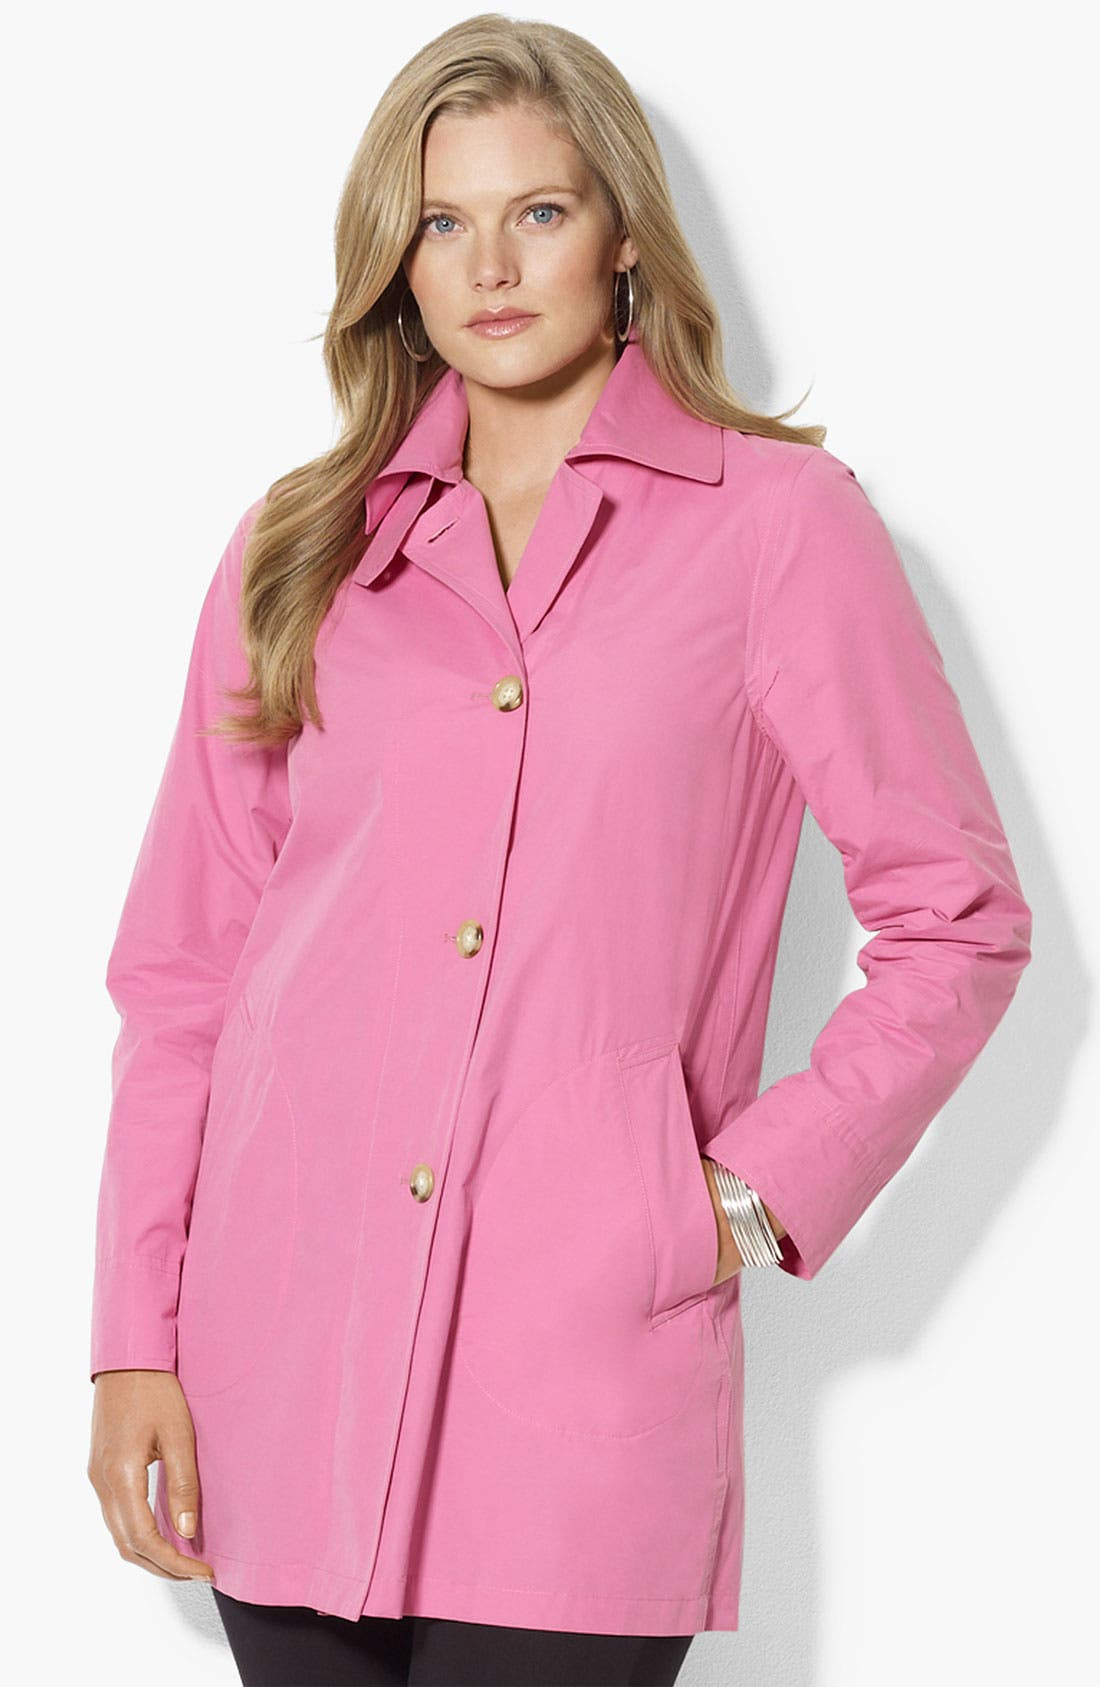 Alternate Image 1 Selected - Lauren Ralph Lauren Stand Collar Jacket (Plus)